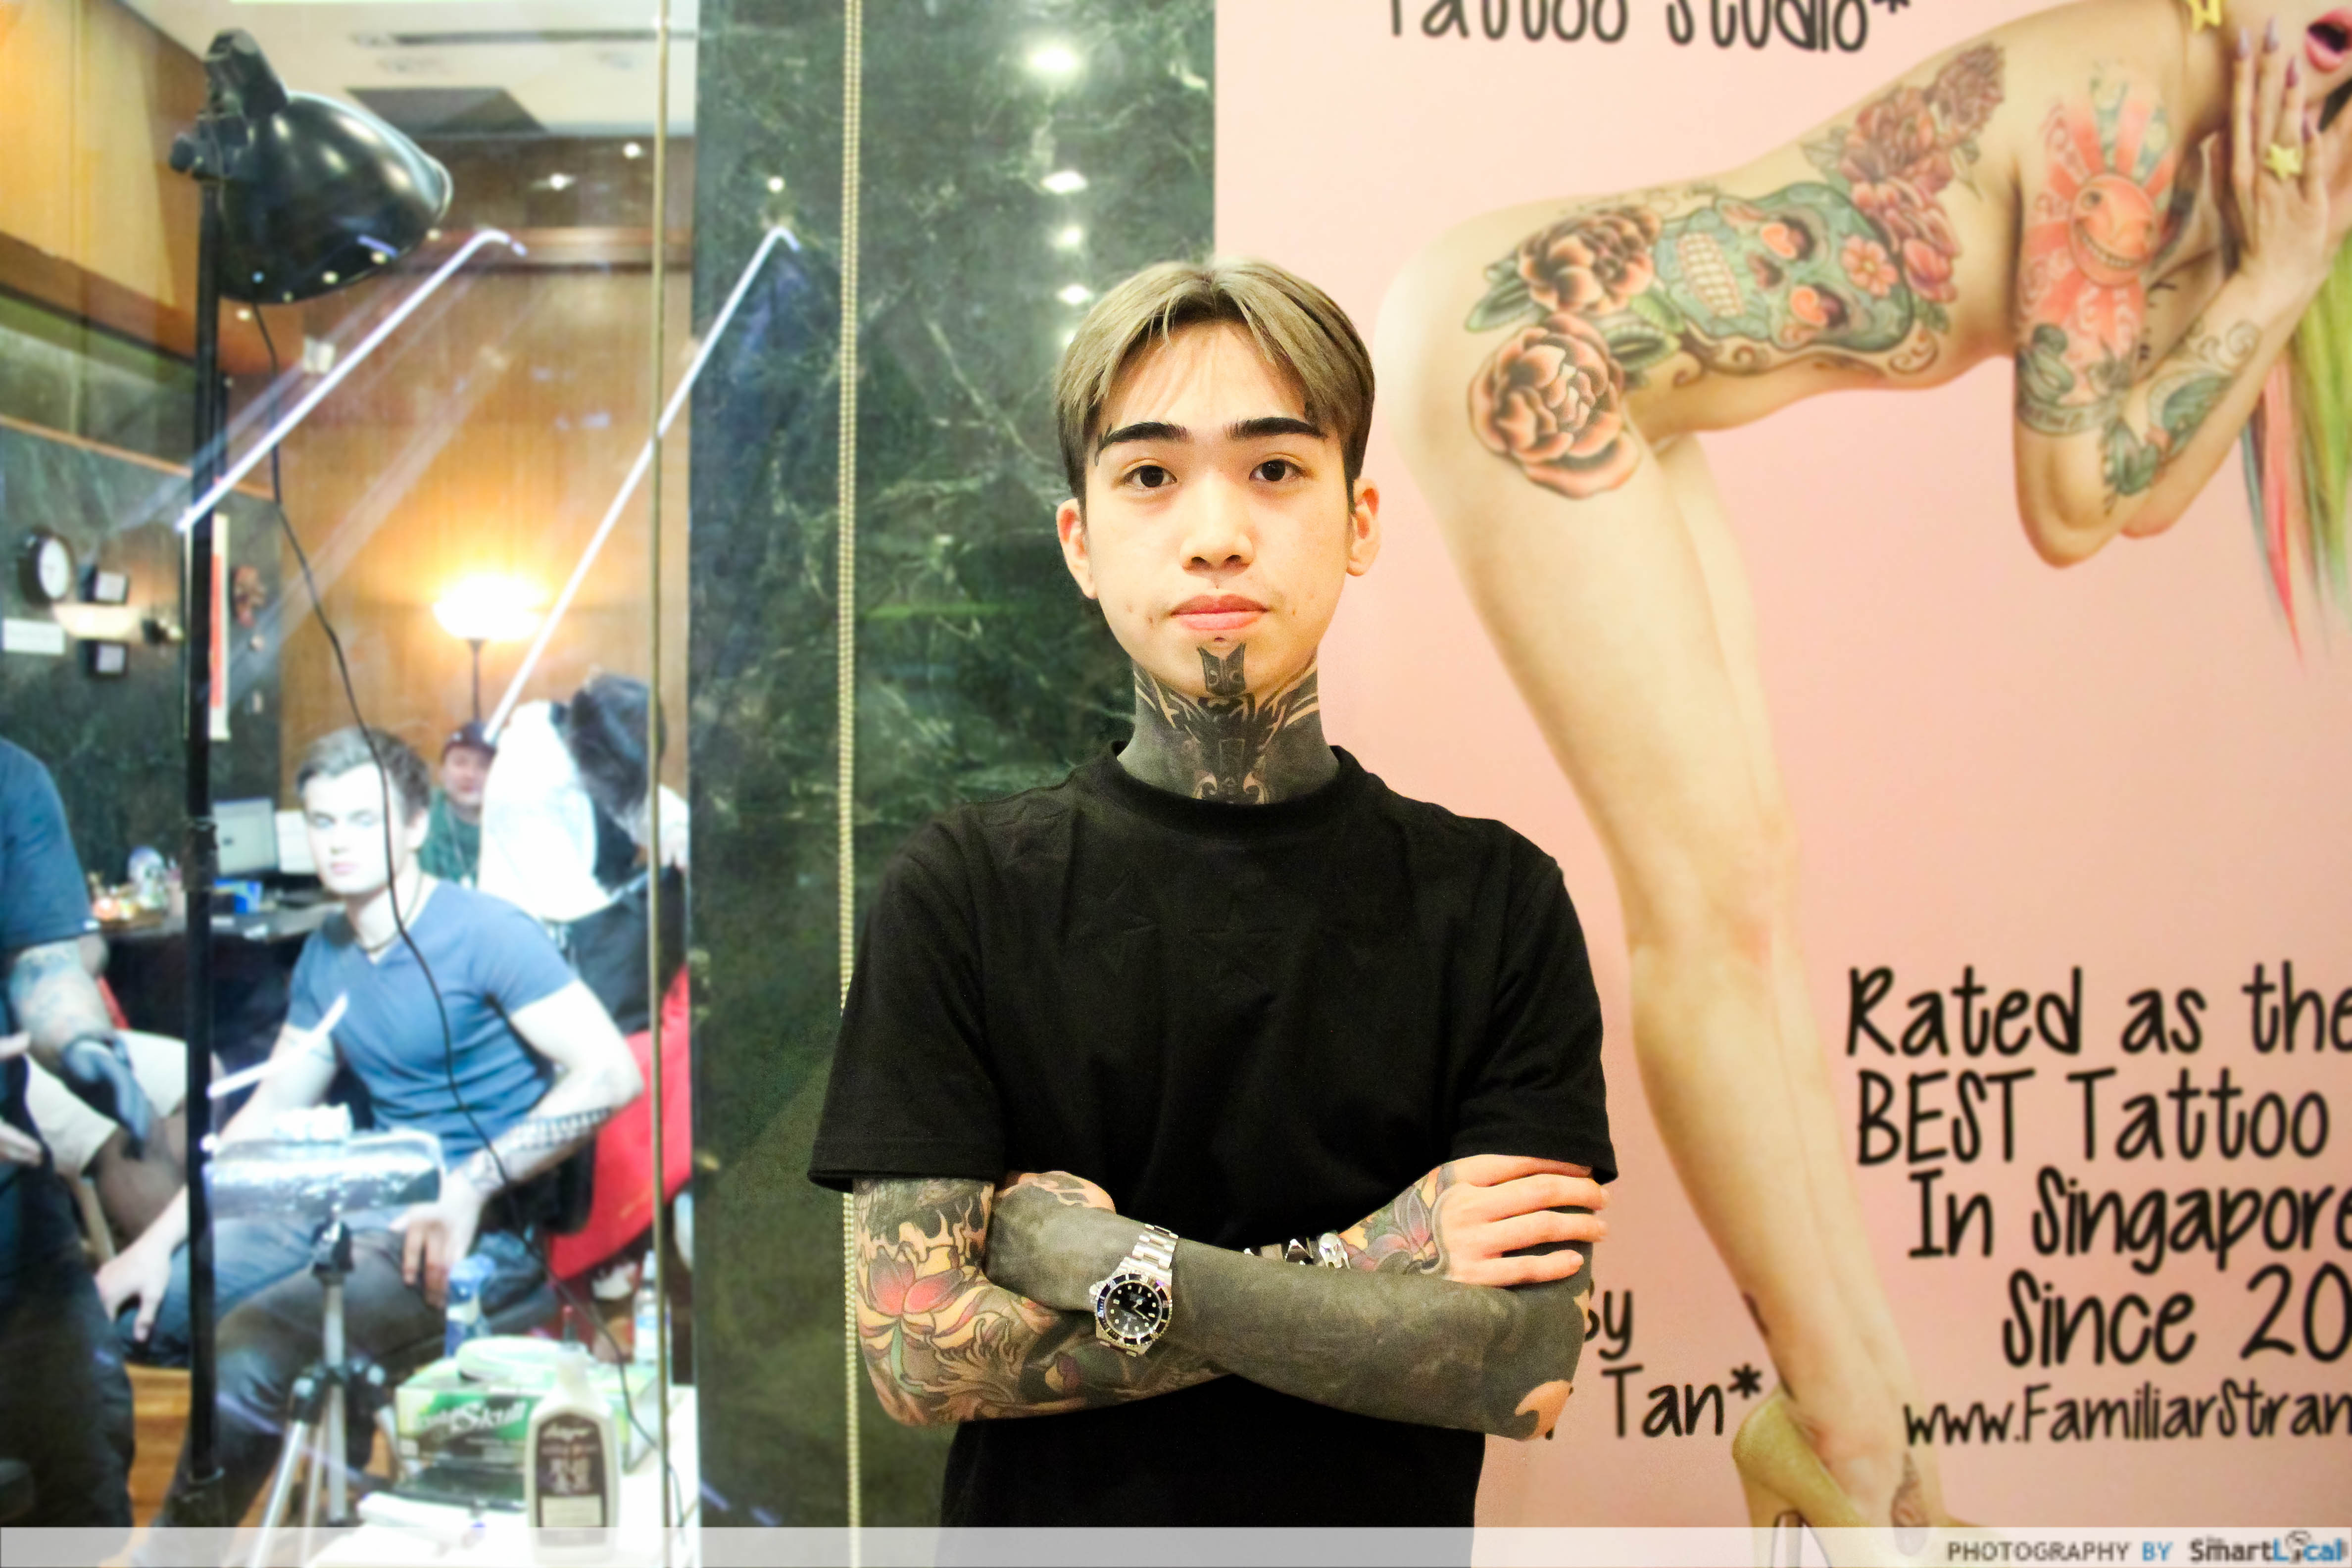 Tattoo Artists of Singapore & Questions You\'ve Always Wanted To Ask Them